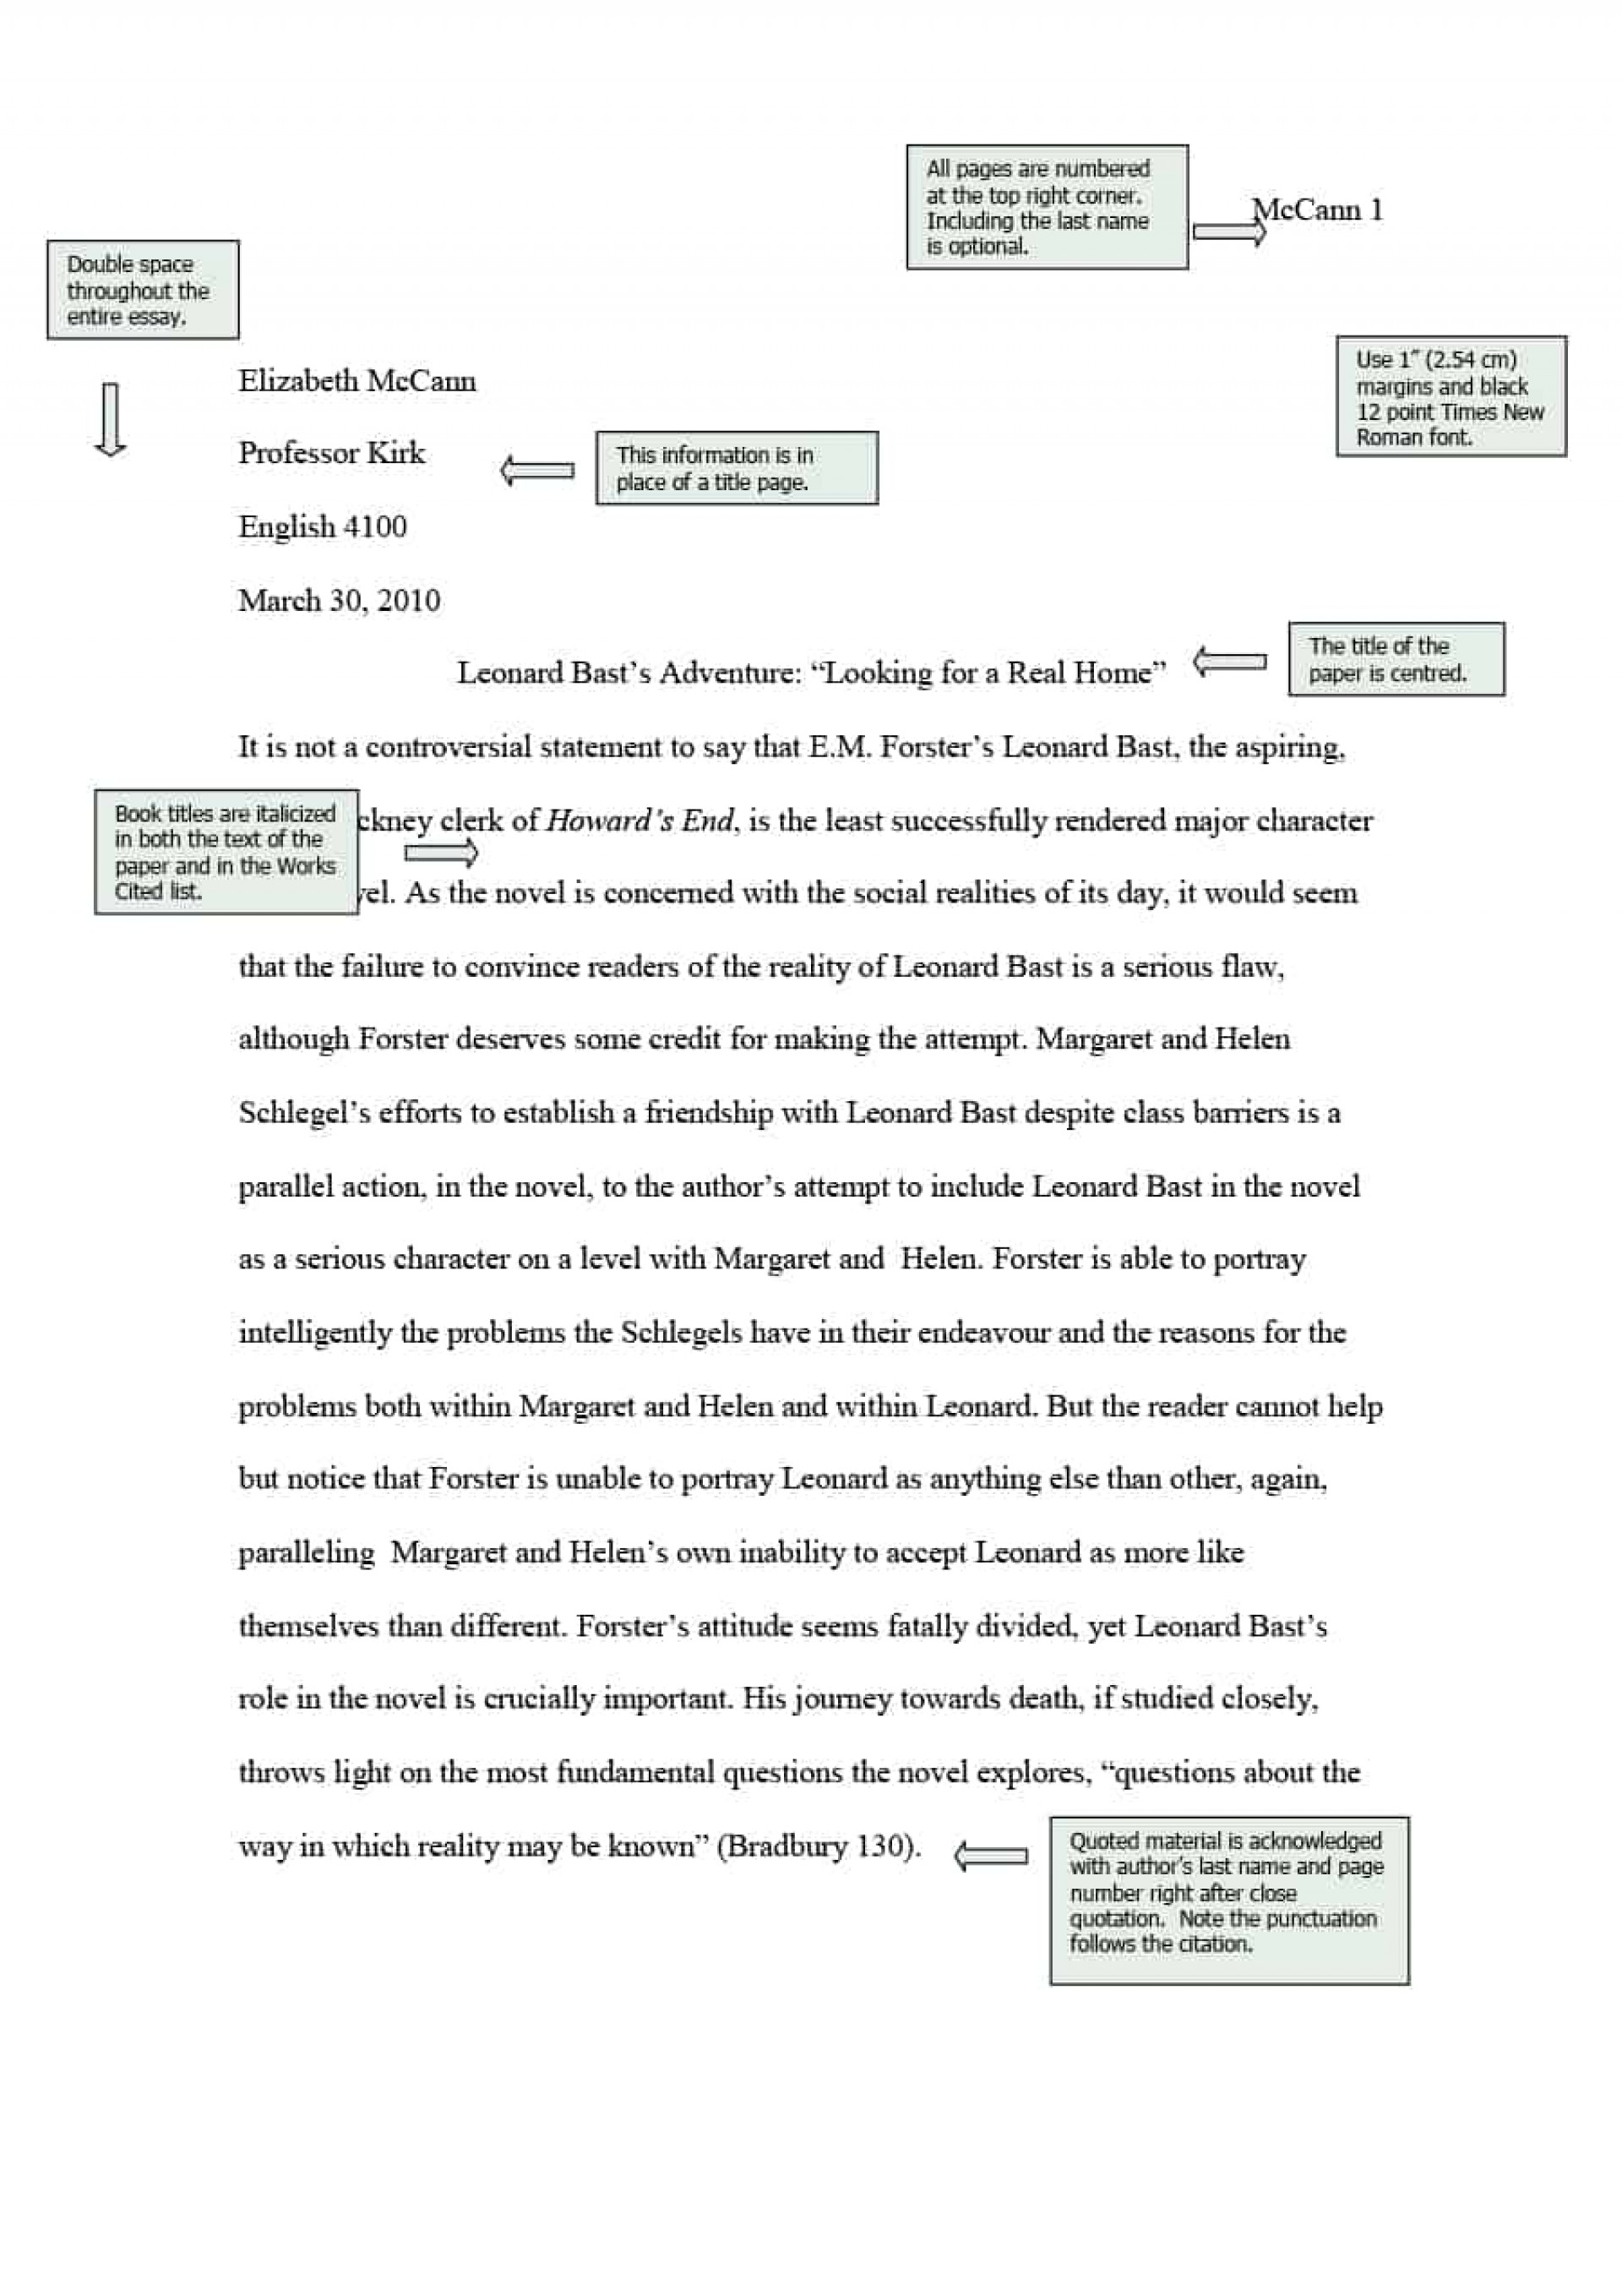 008 Mla Essay Example Format Template Magnificent Title Page Informative Outline Cite In Anthology 1920